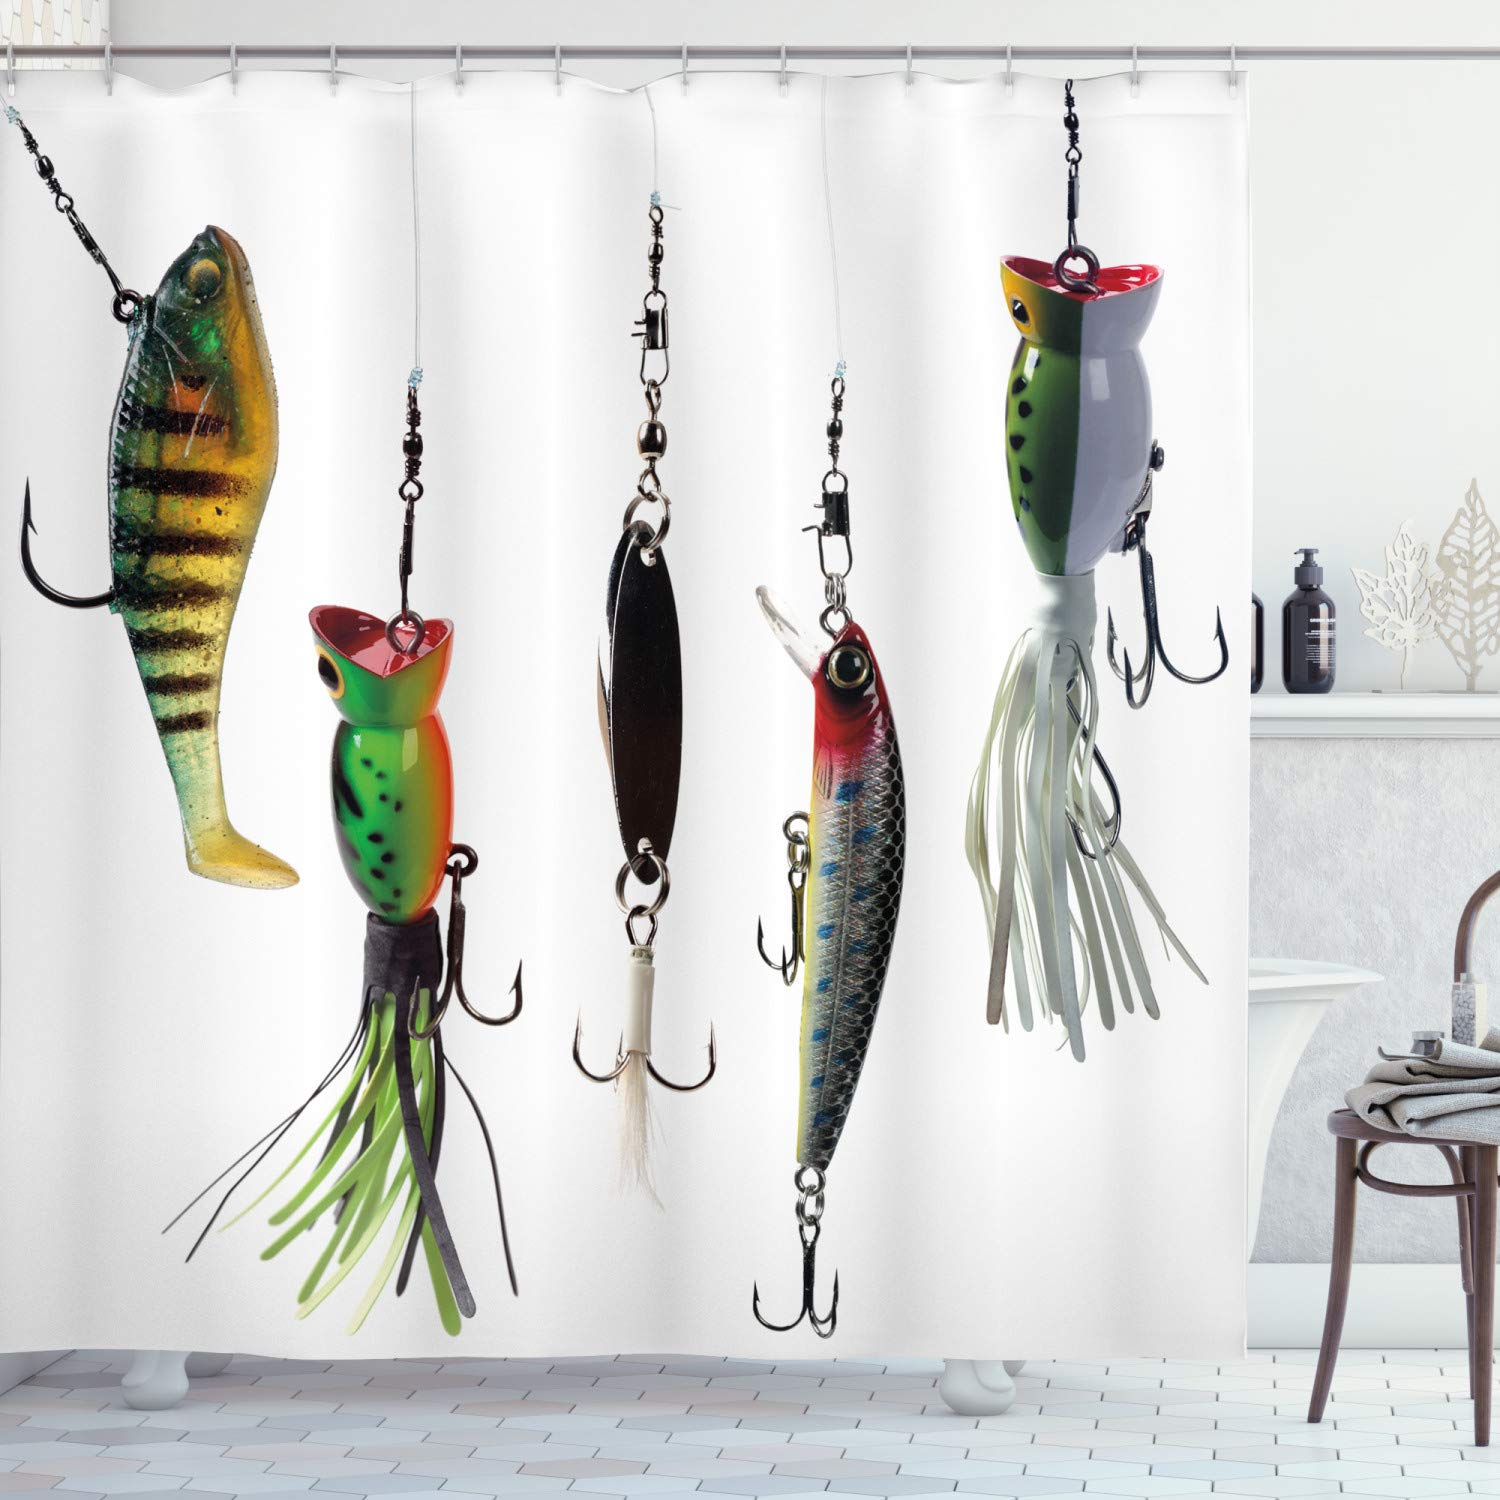 Fishing Themed Shower Curtains.Ambesonne Fishing Decor Shower Curtain Various Type Of Fishing Baits Hobby Leisure Sports Hooks Catch Elements Image Fabric Bathroom Decor Set With